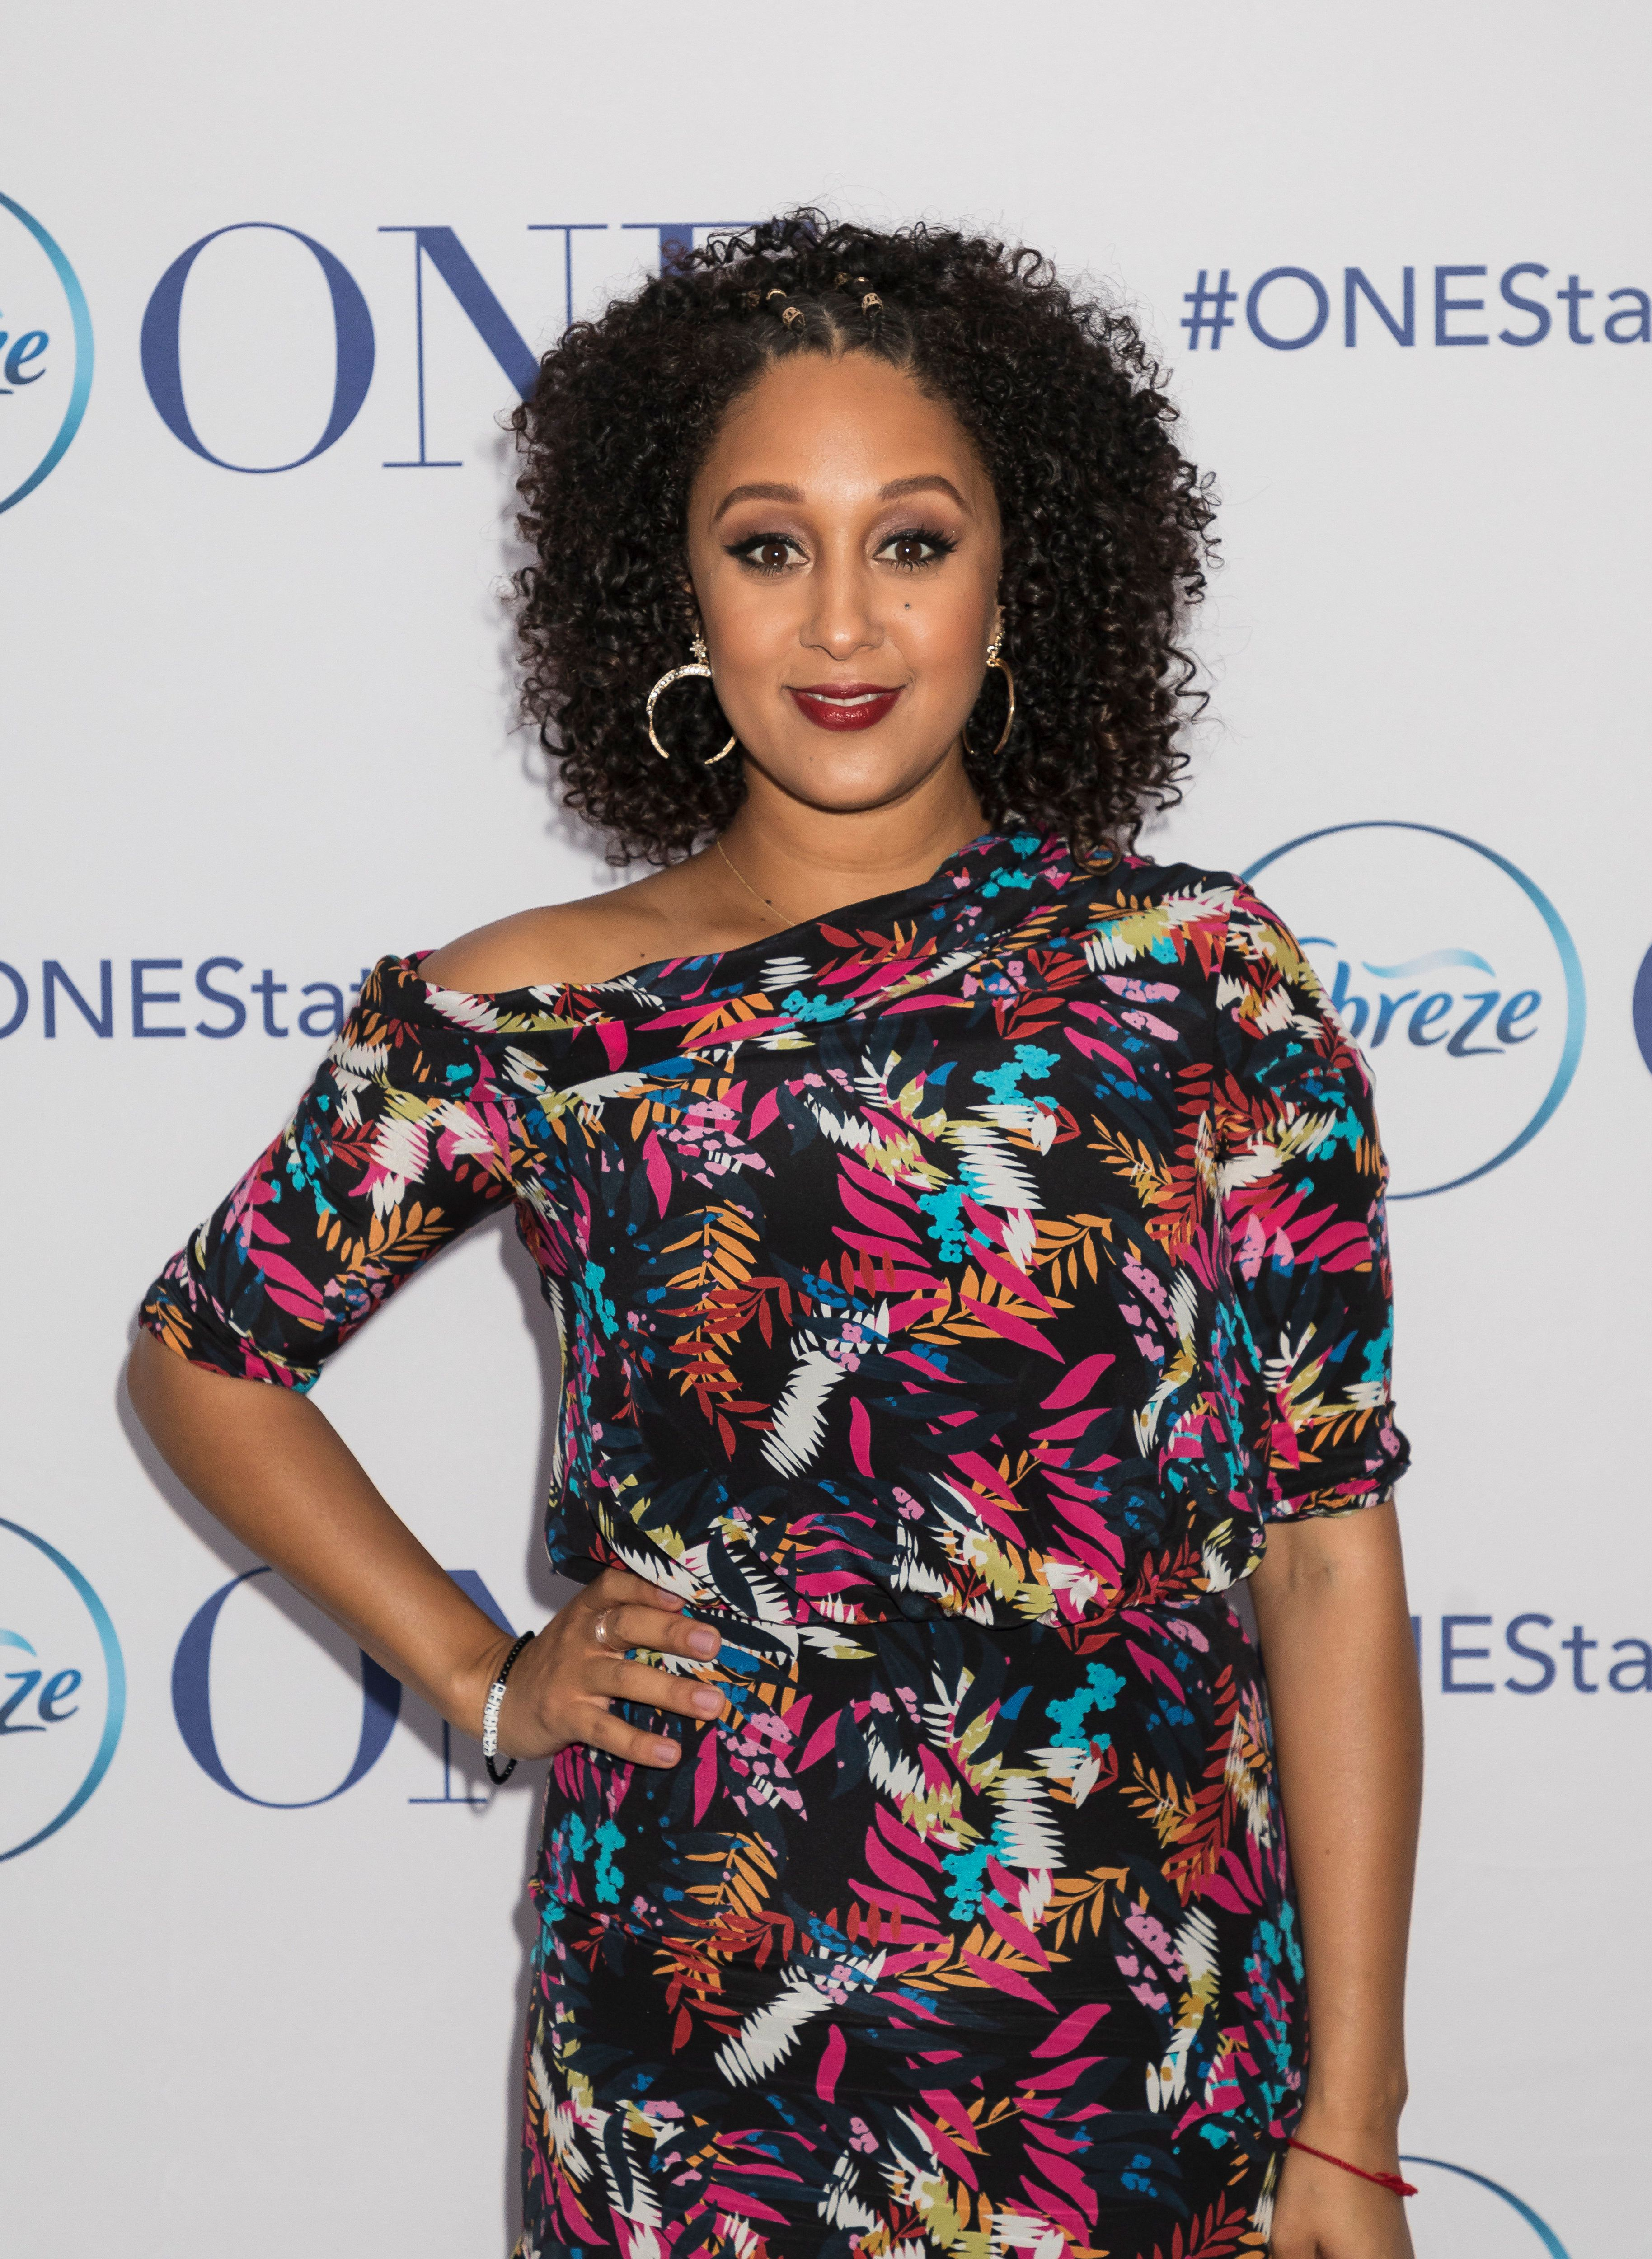 Tamera Mowry-Housley at a Febreze event in April.